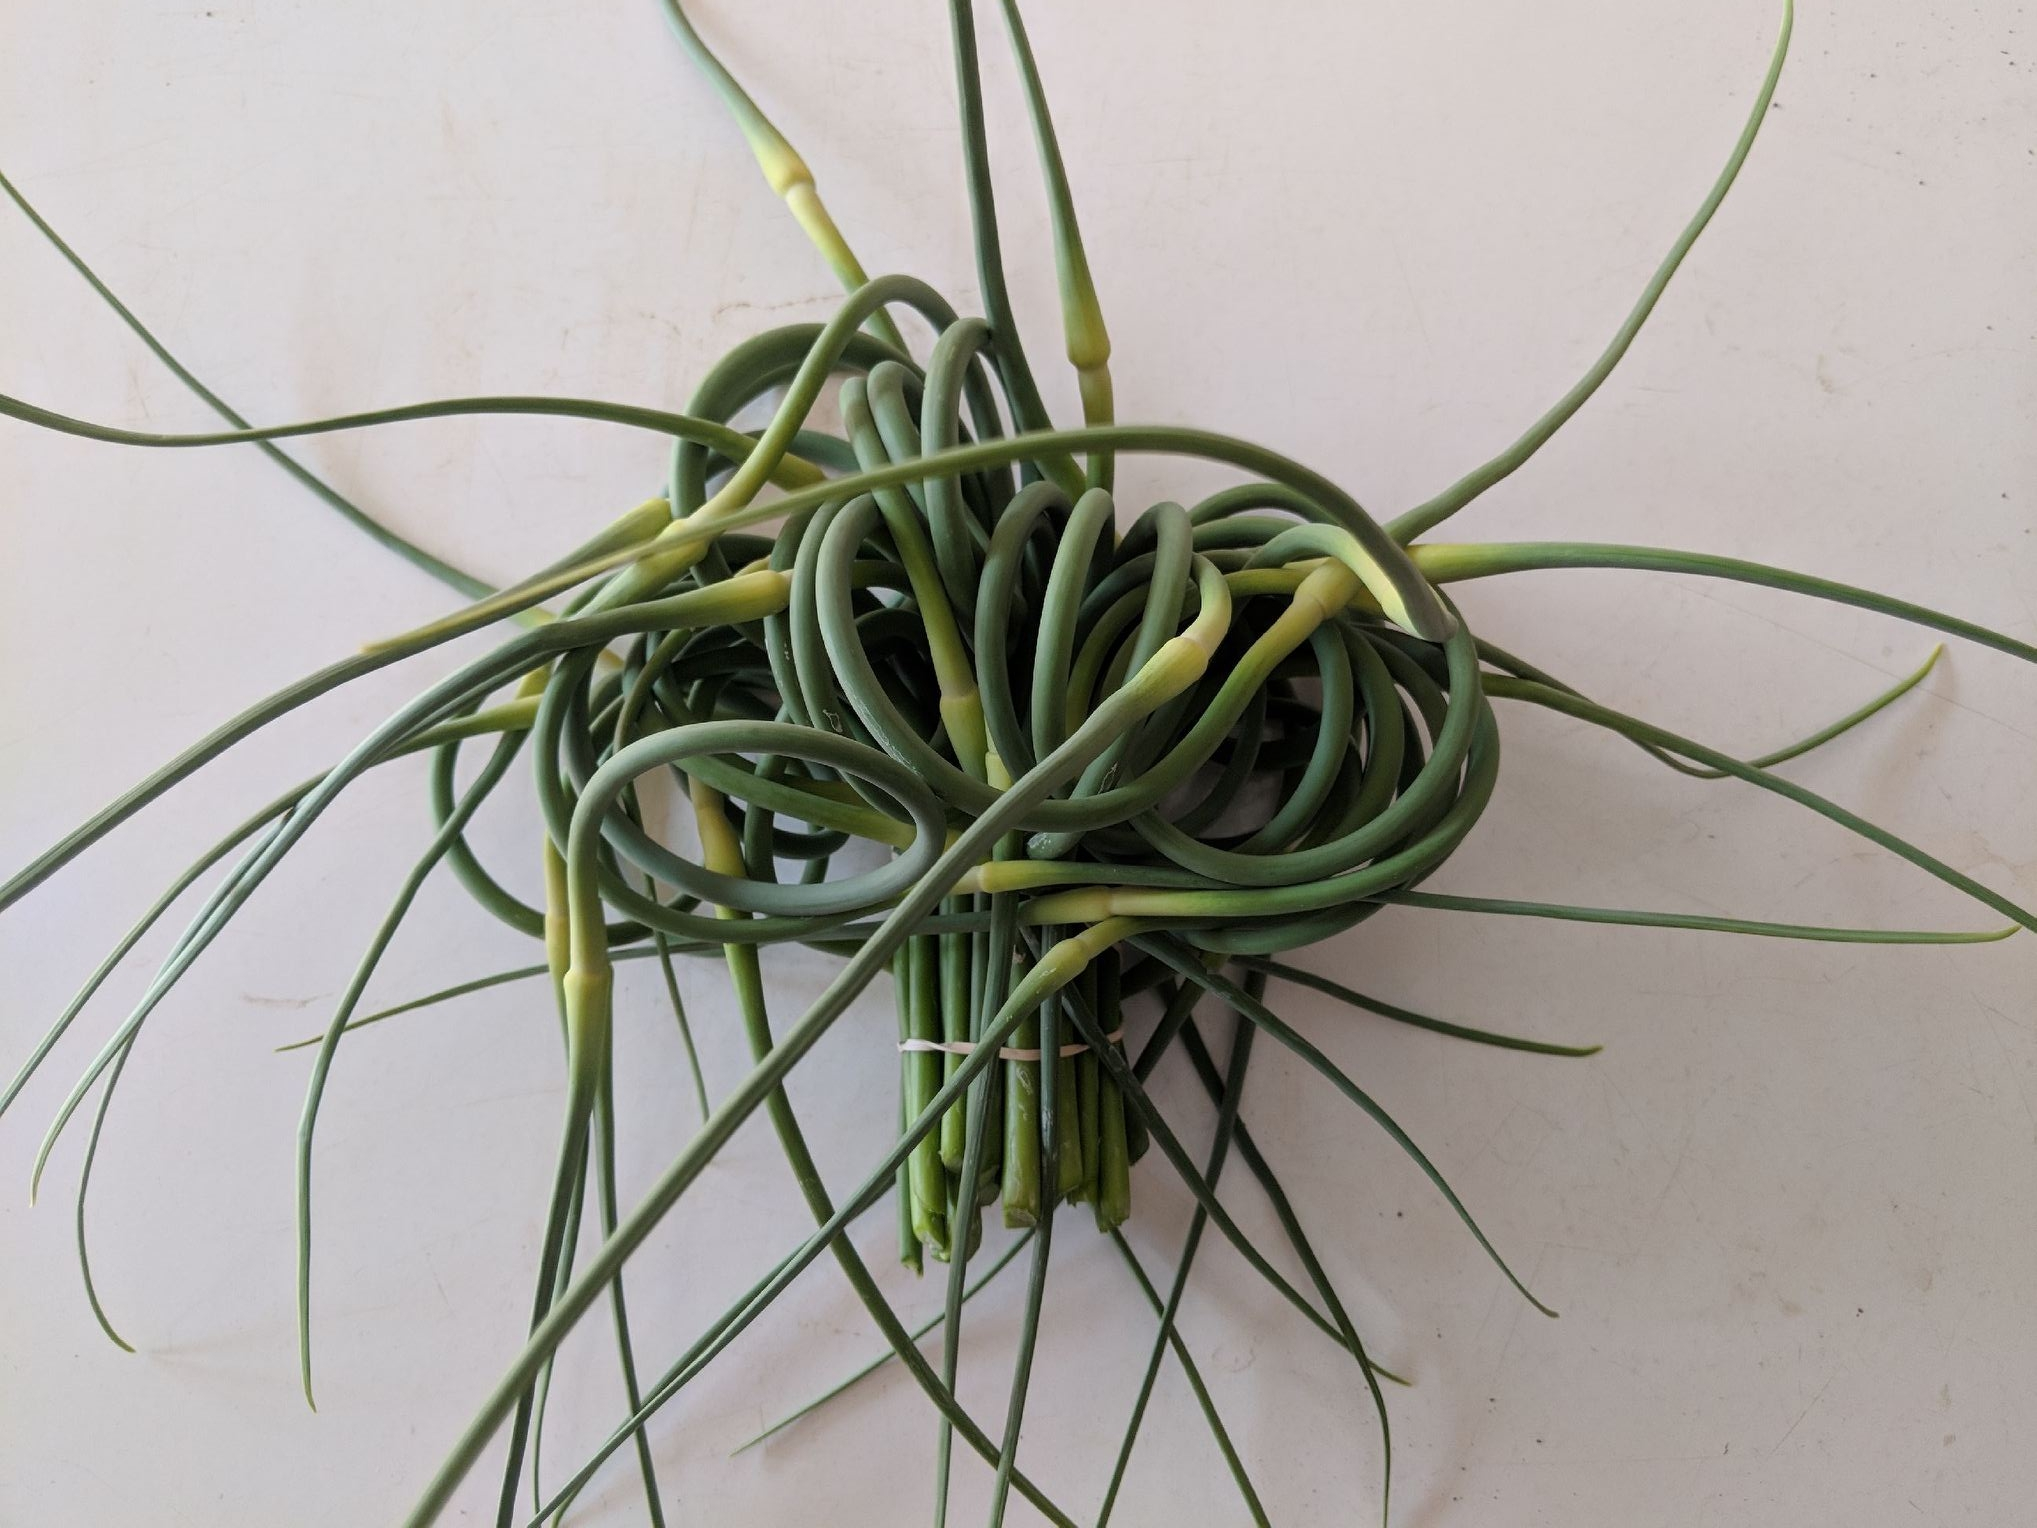 Garlic Scapes curling with whimsy.